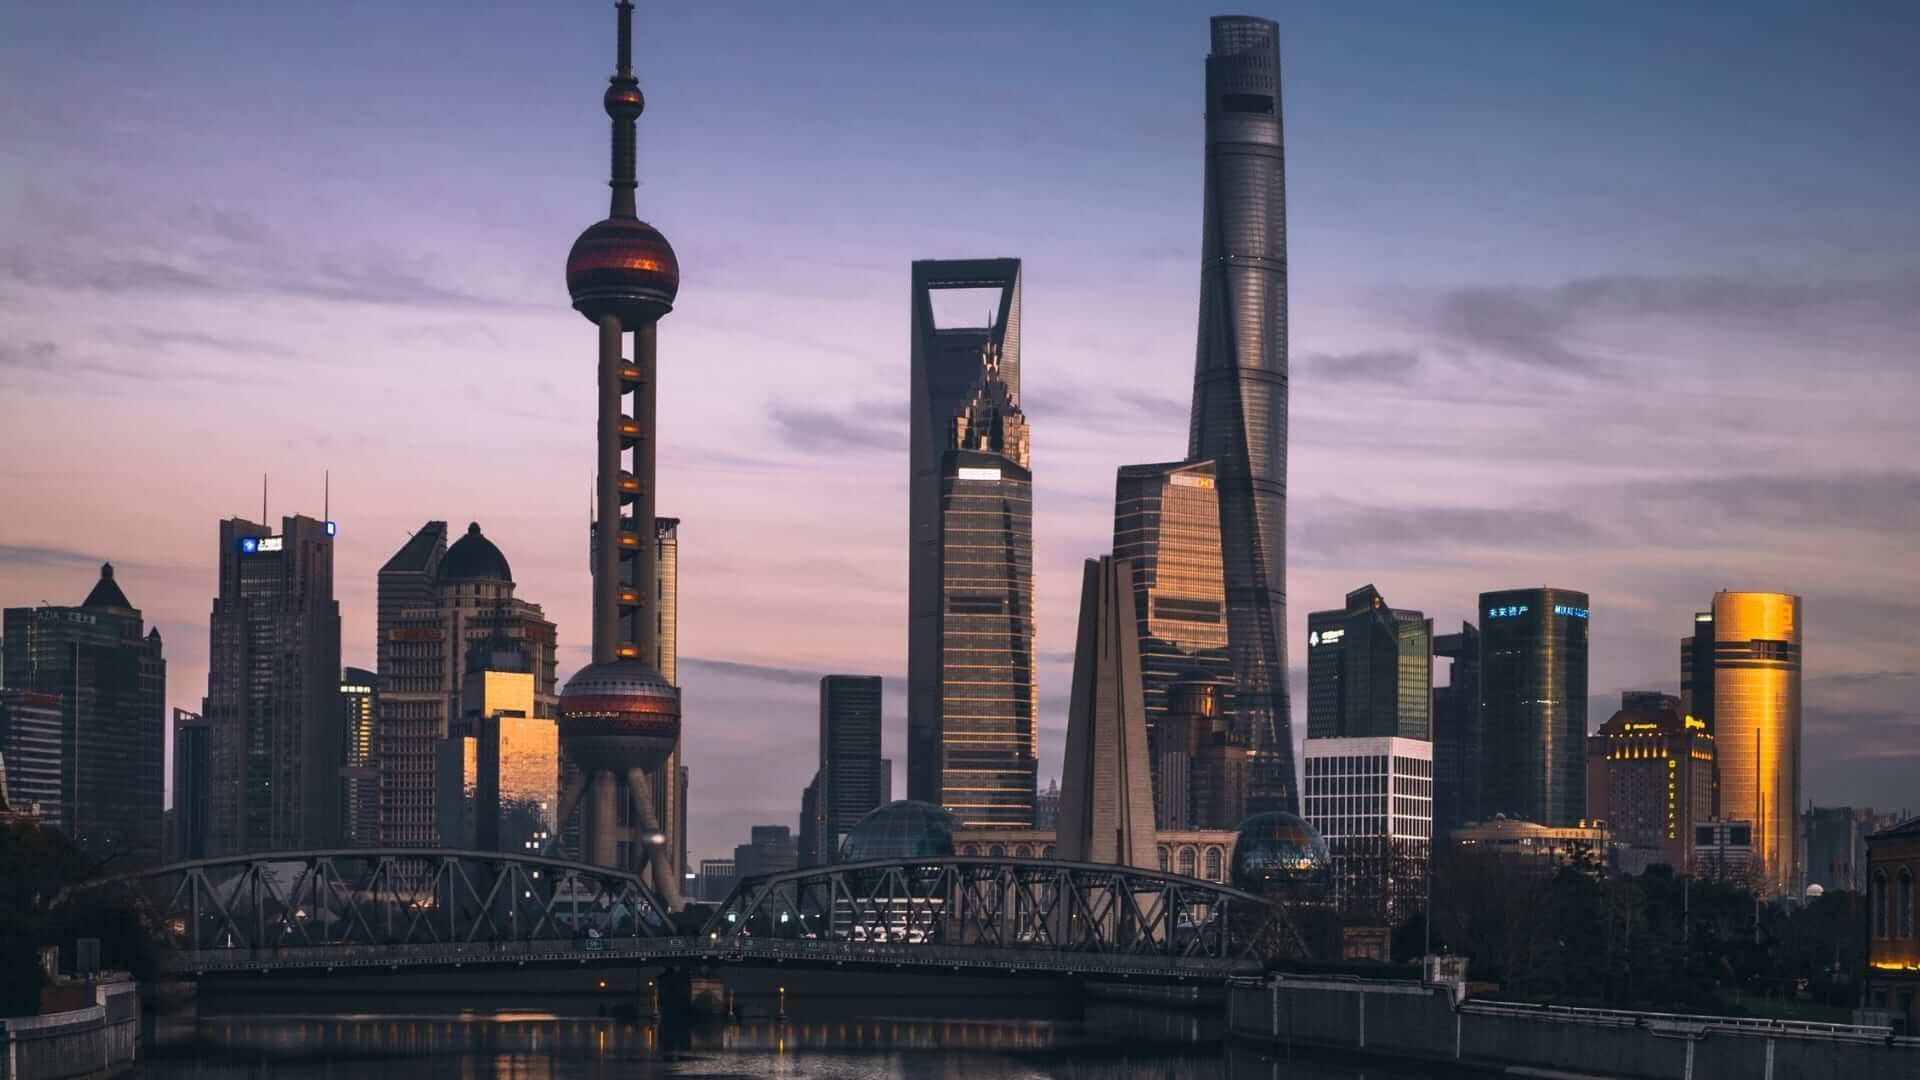 Buildings in Shanghai during sunset in China.